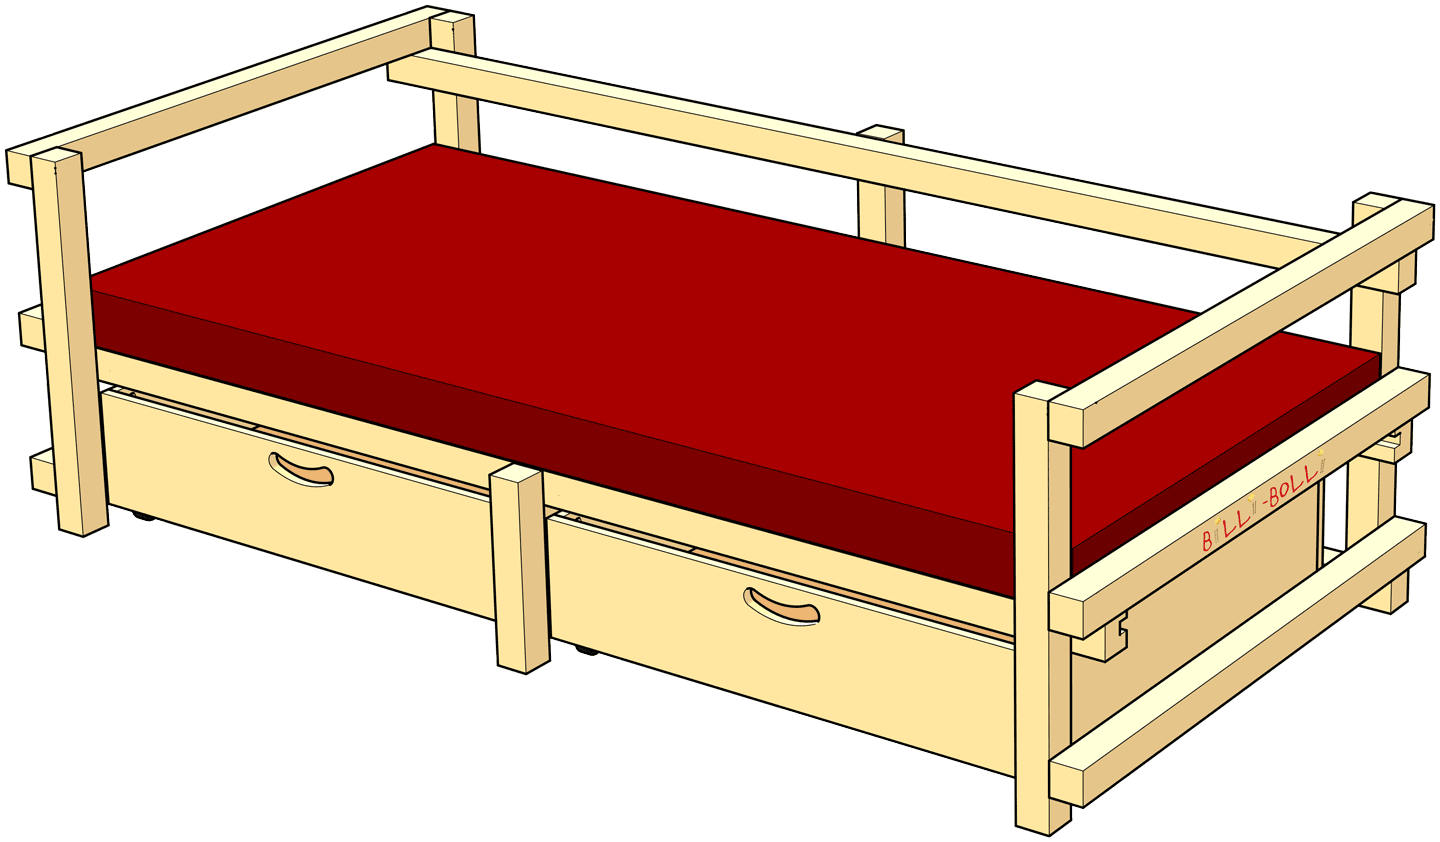 Low Youth Bed Type D: with tall sides and backrest